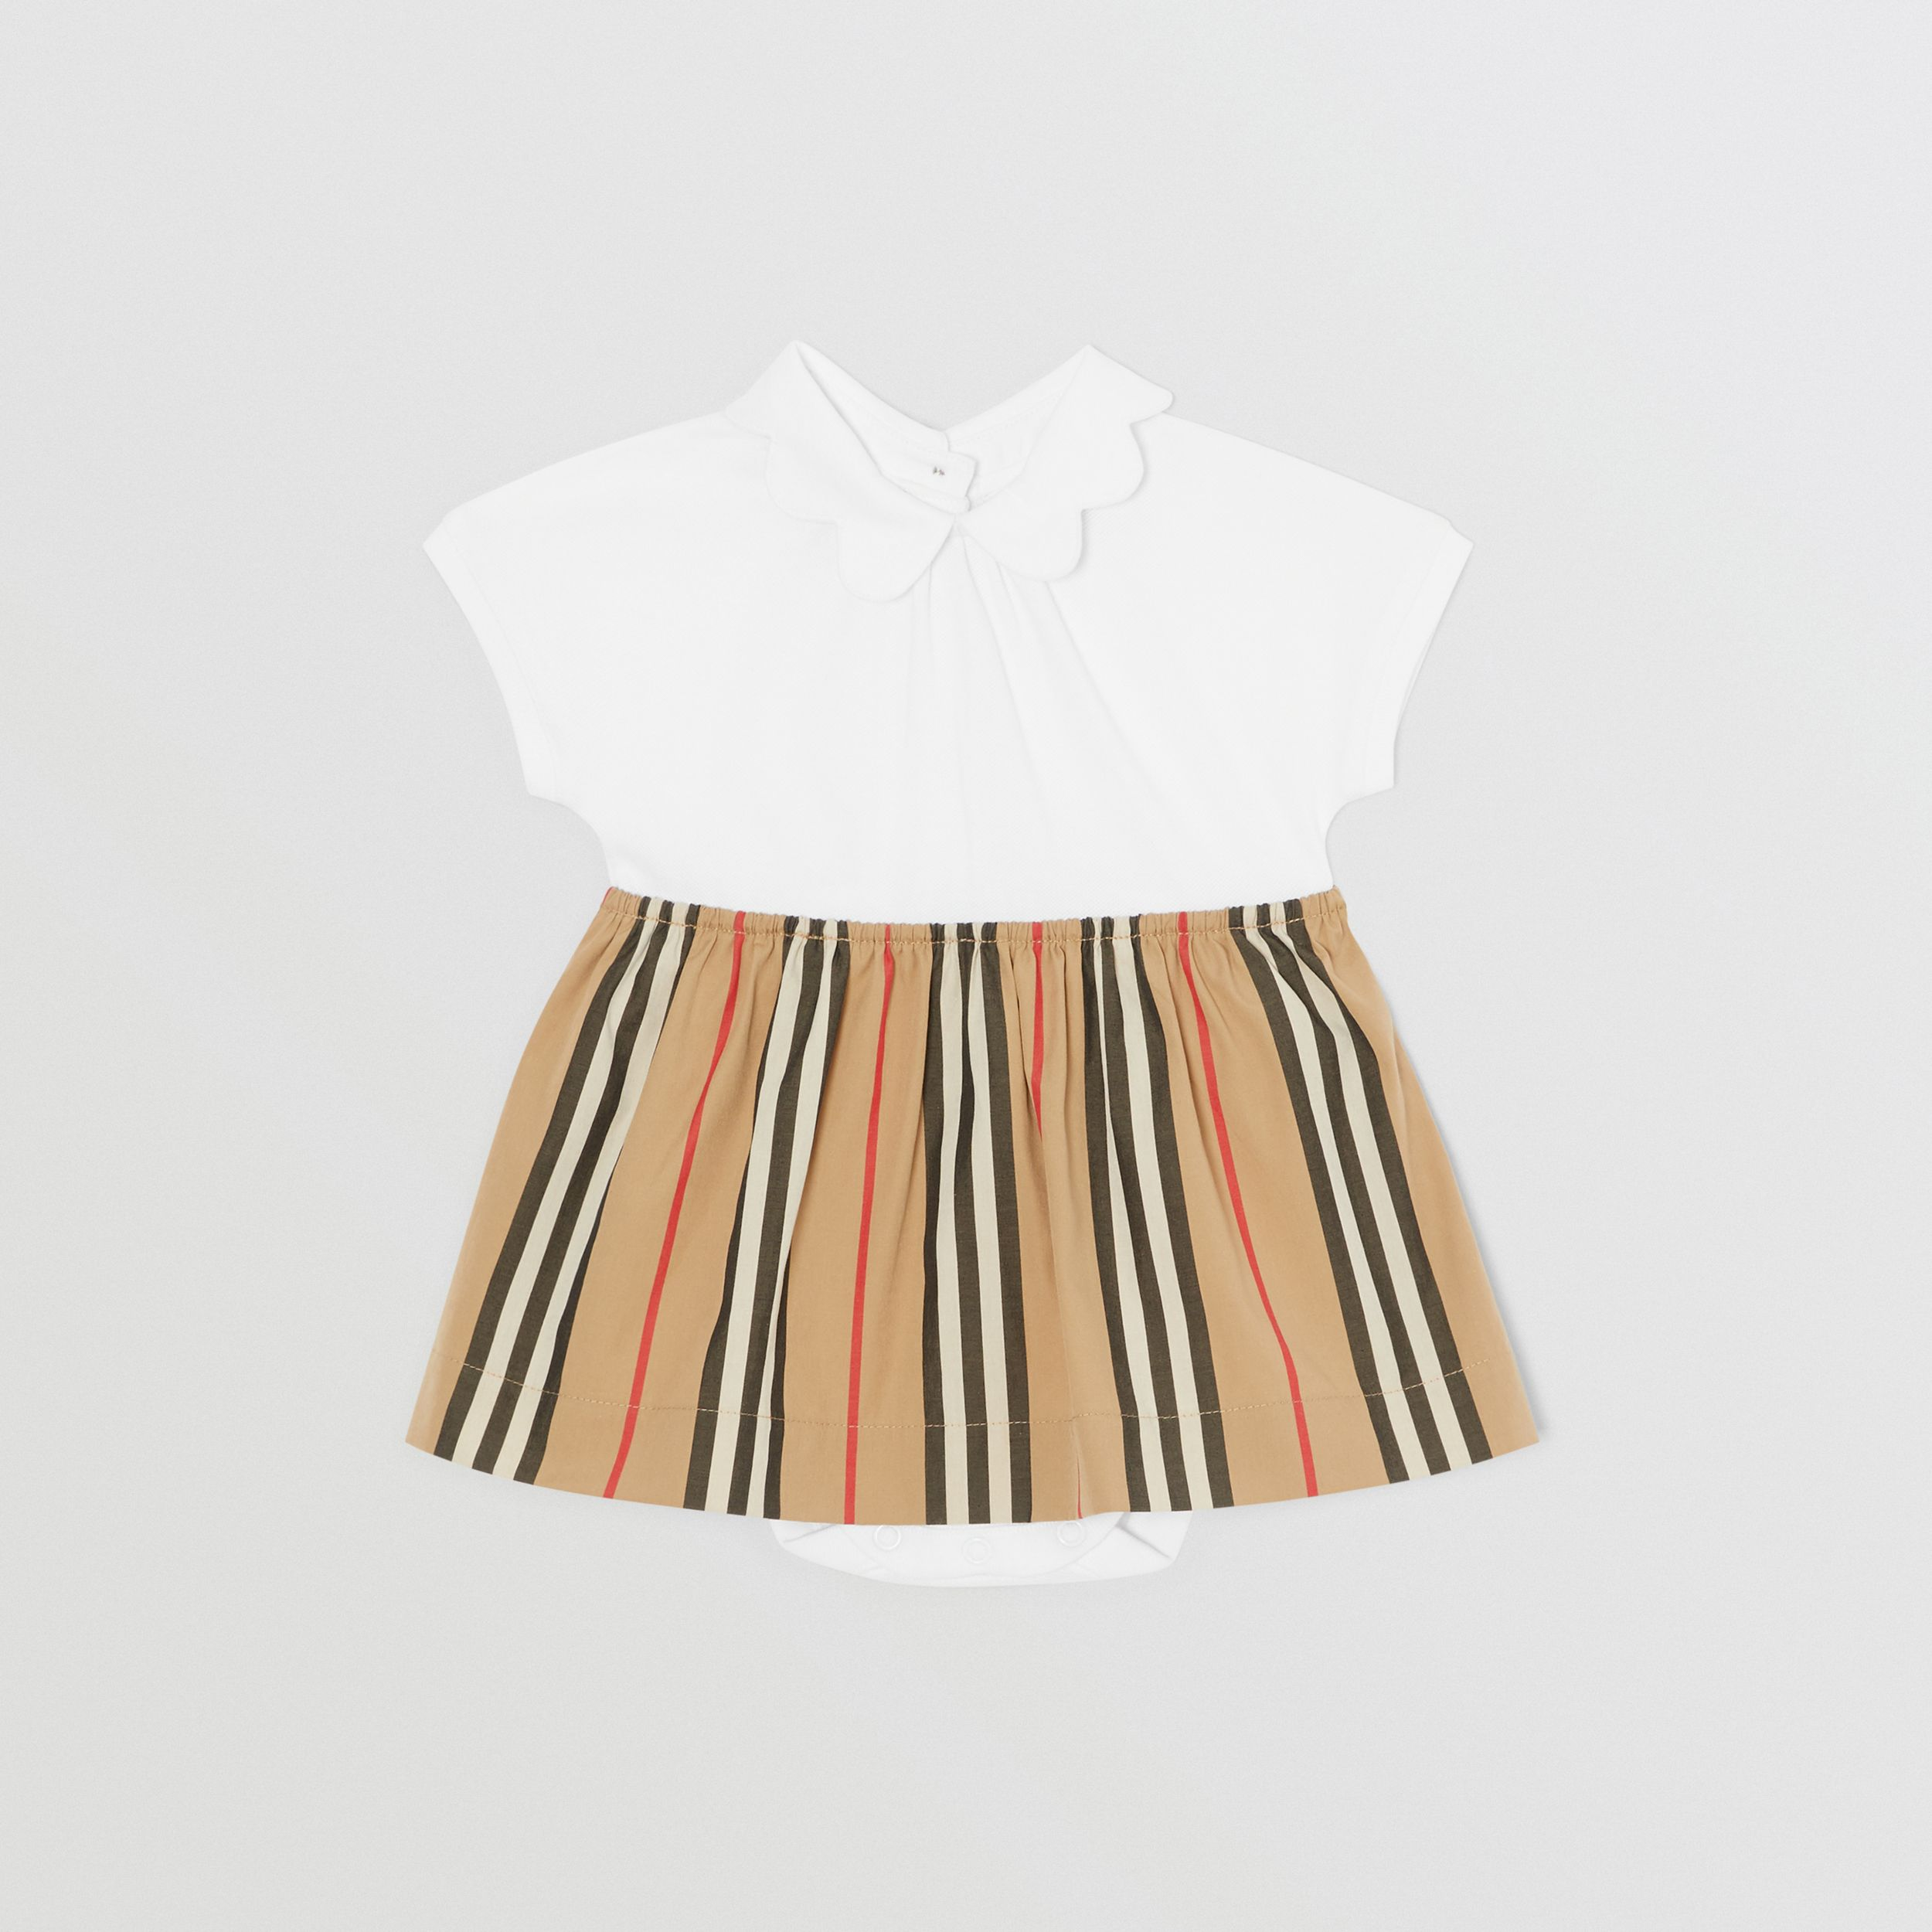 Icon Stripe Skirt Cotton Piqué Bodysuit in White - Children | Burberry - 1